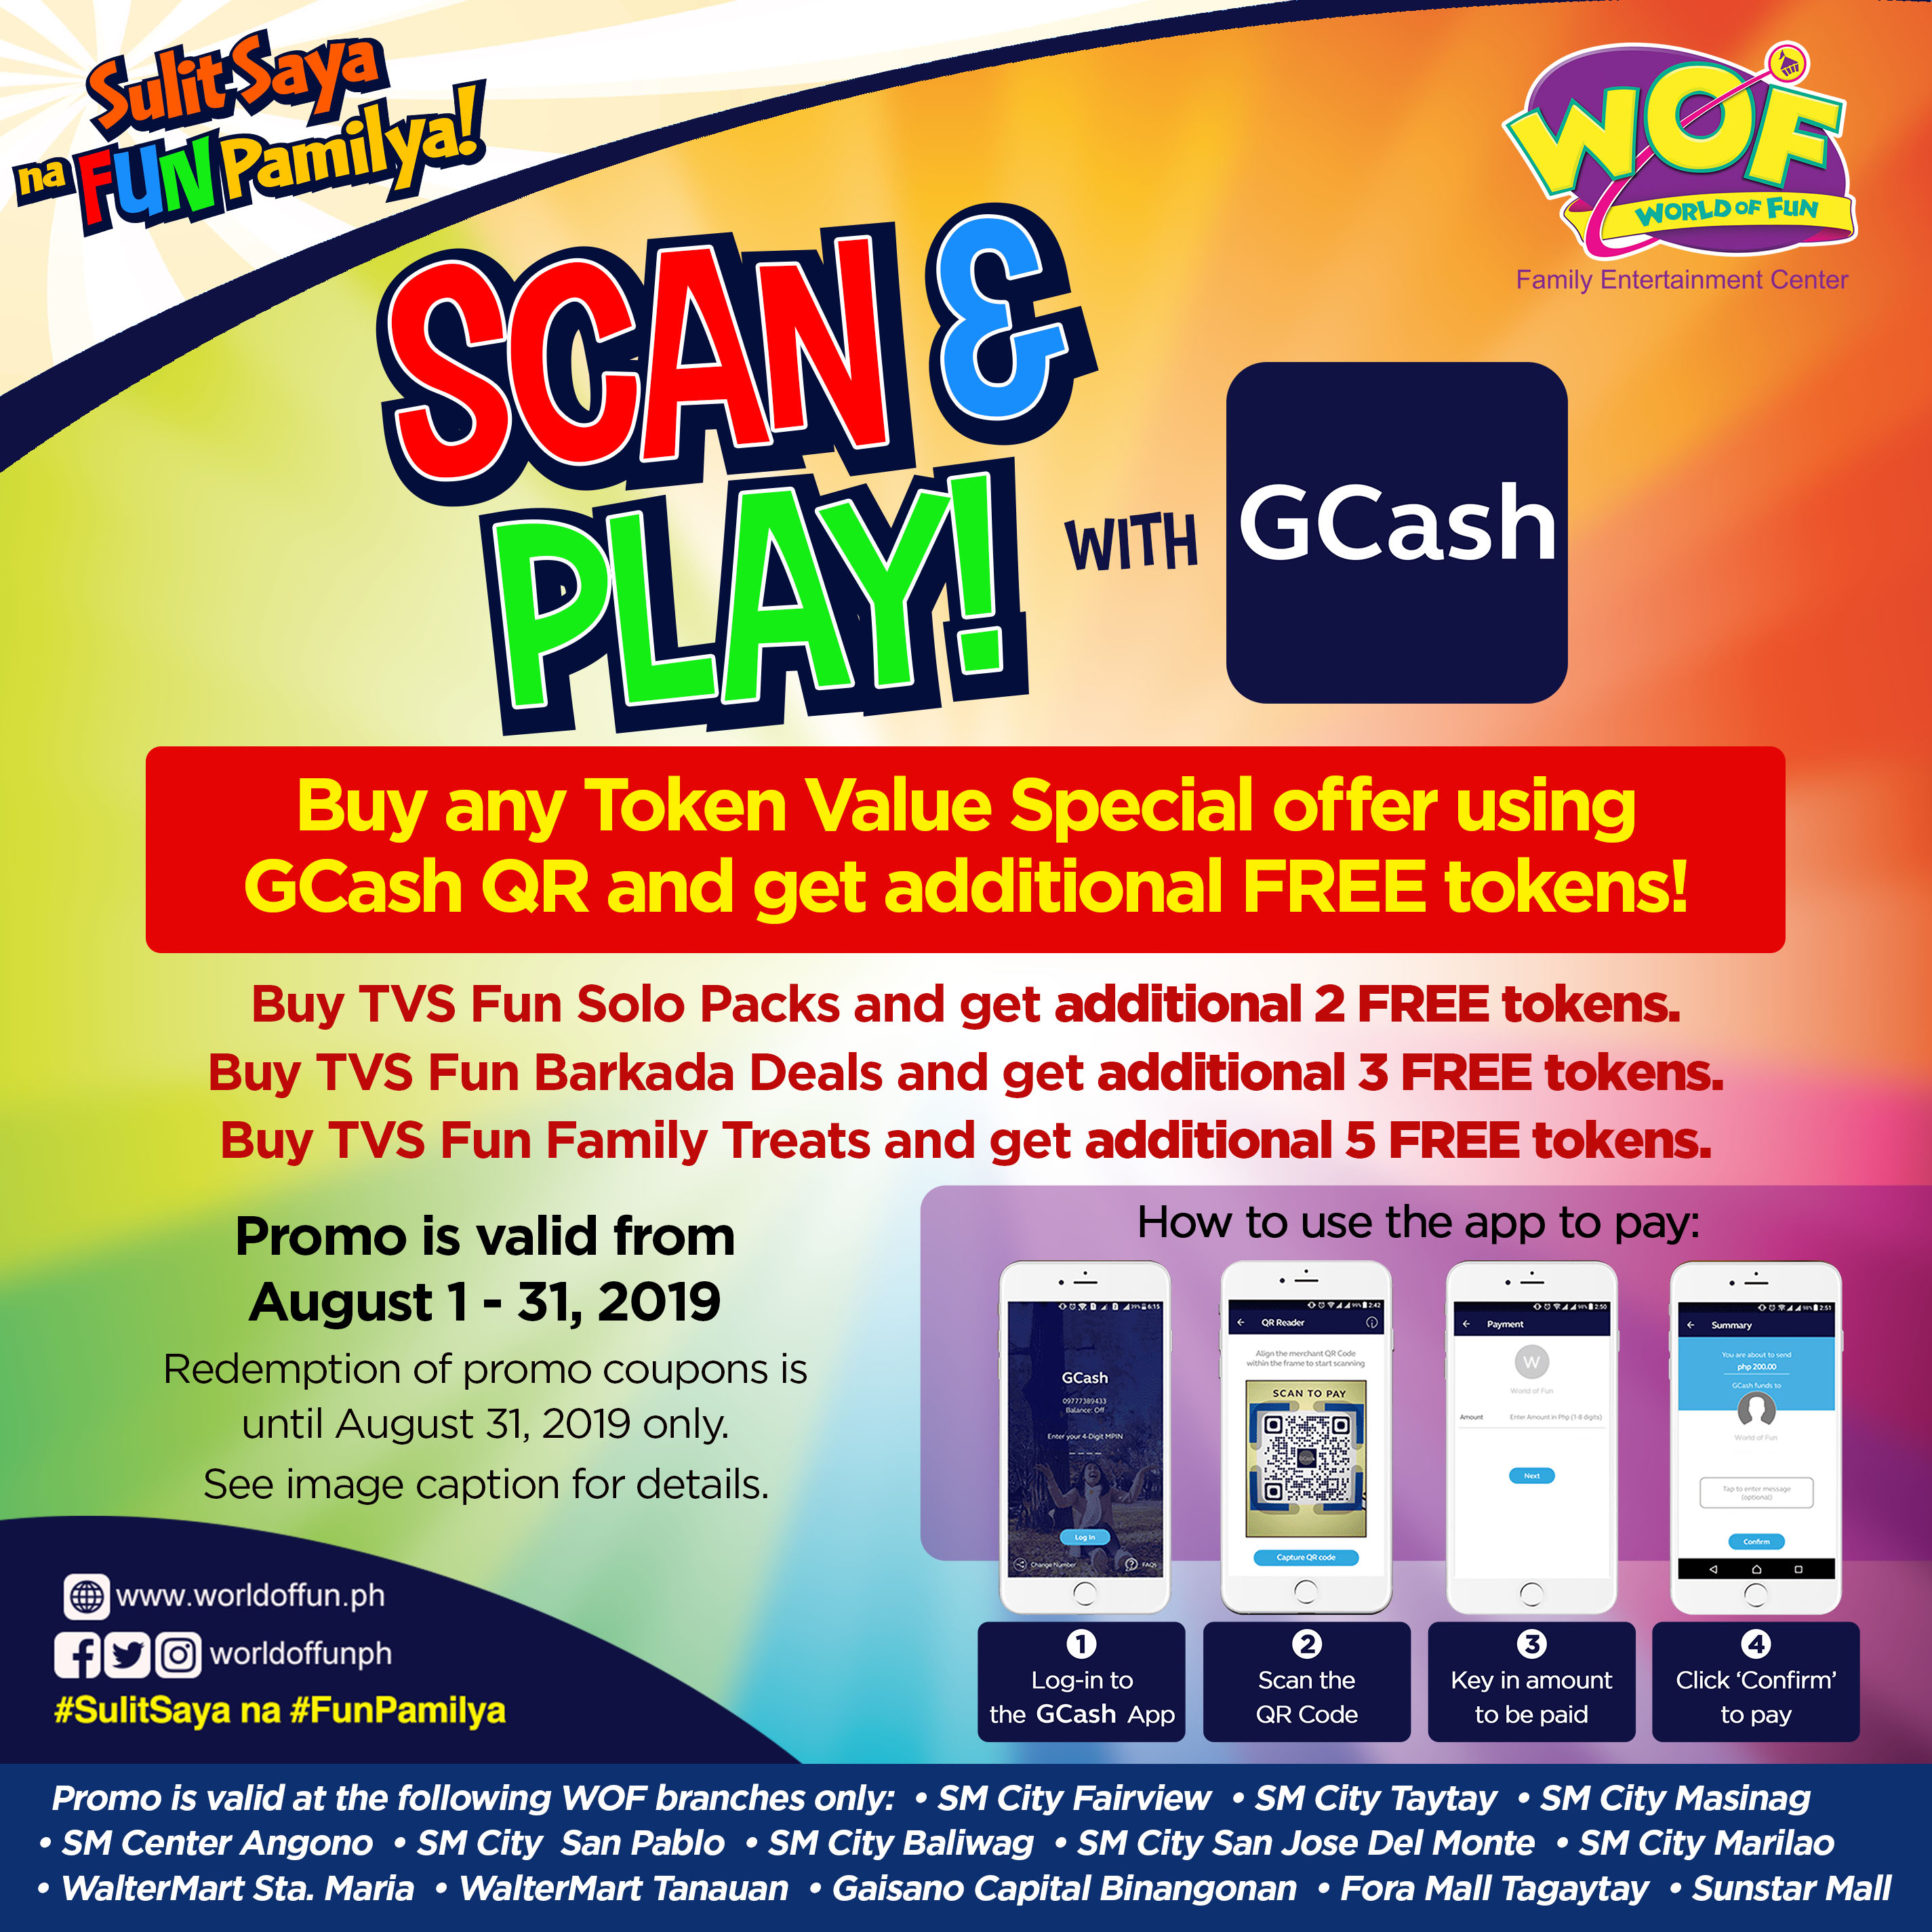 GCash Scan and Play